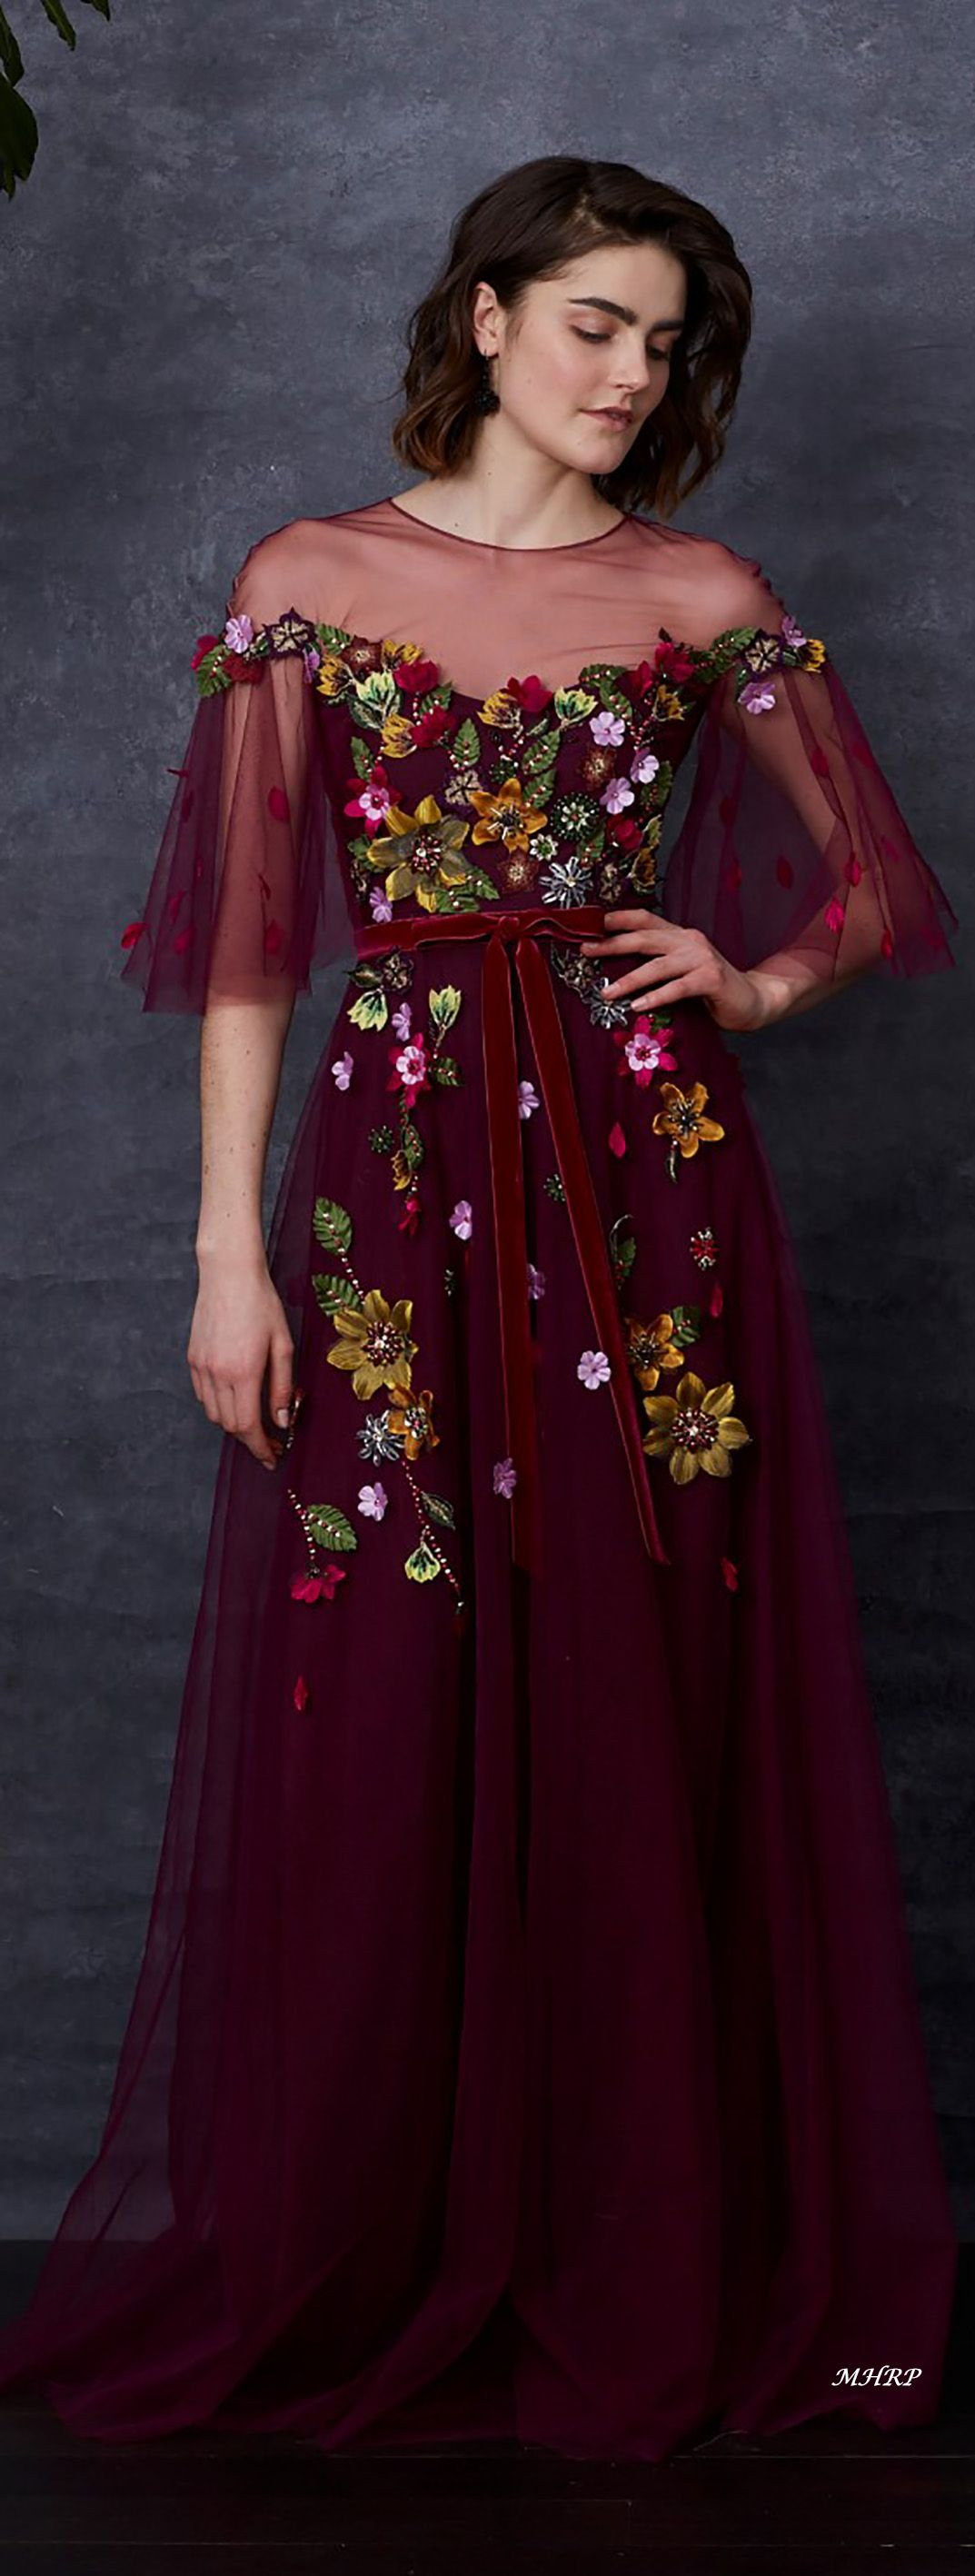 Marchesa notte prefall image pinned from marchesa